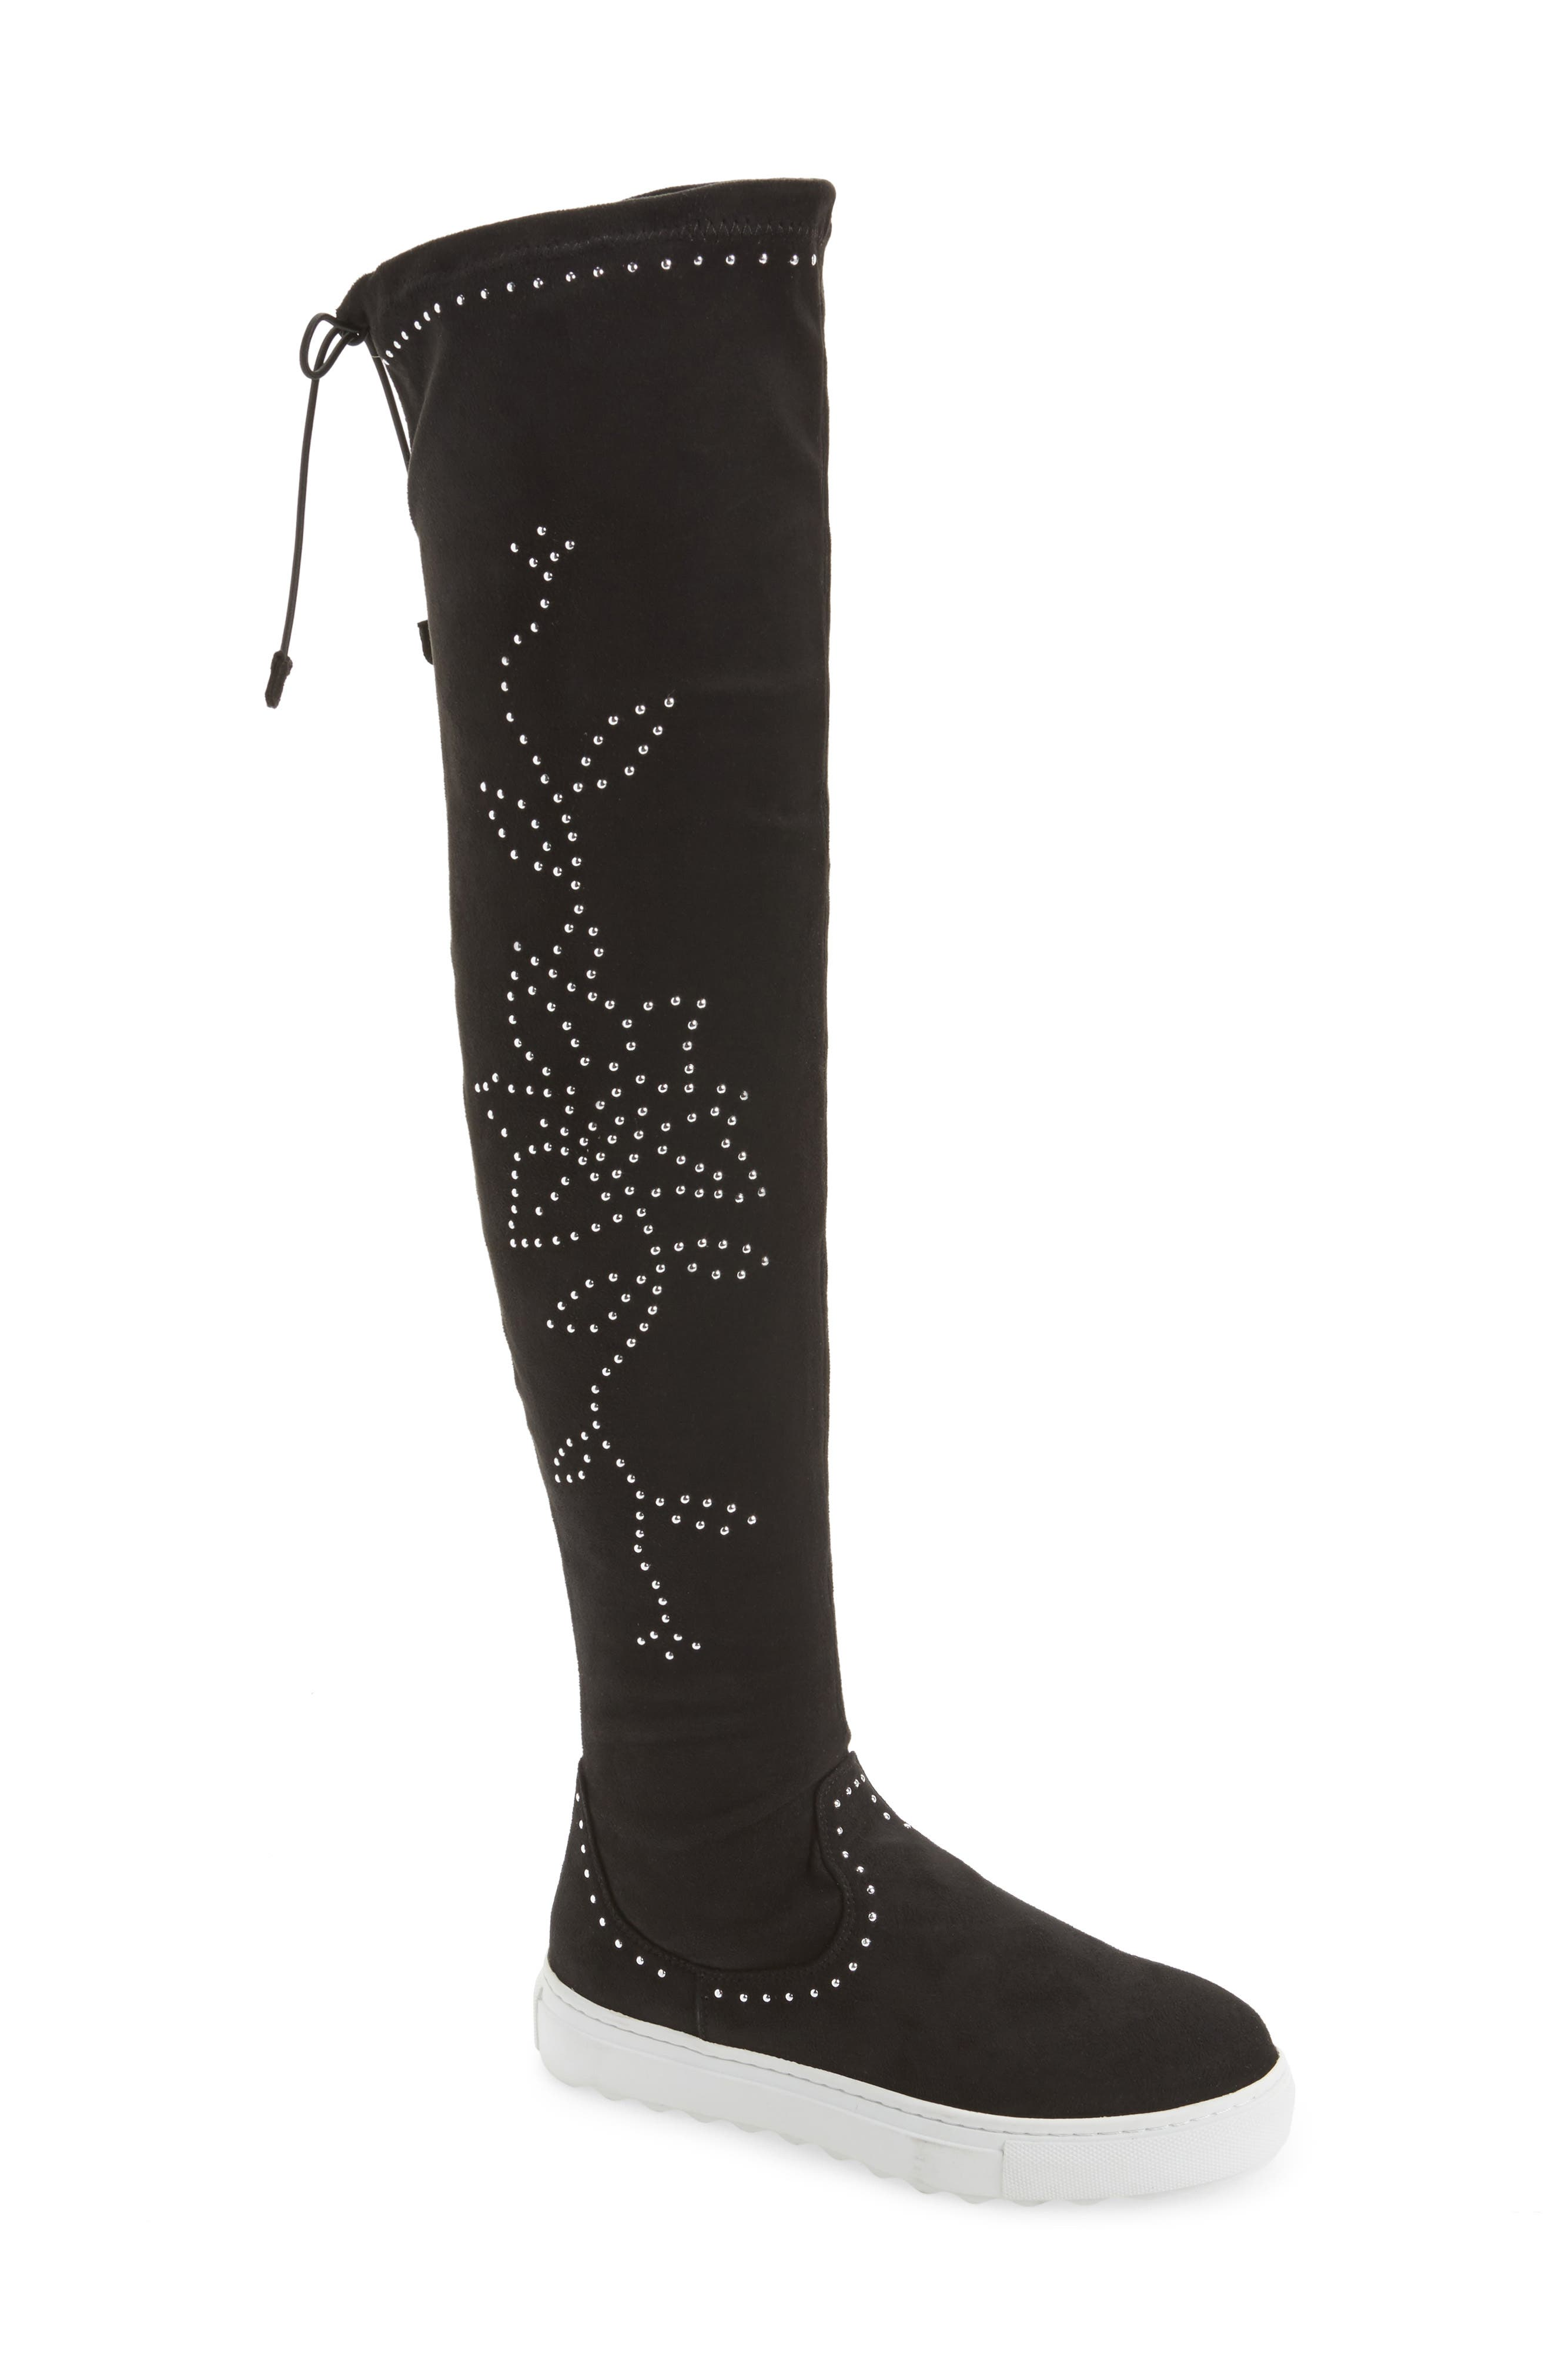 Alternate Image 1 Selected - JSlides Plentee Over the Knee Boot (Women)